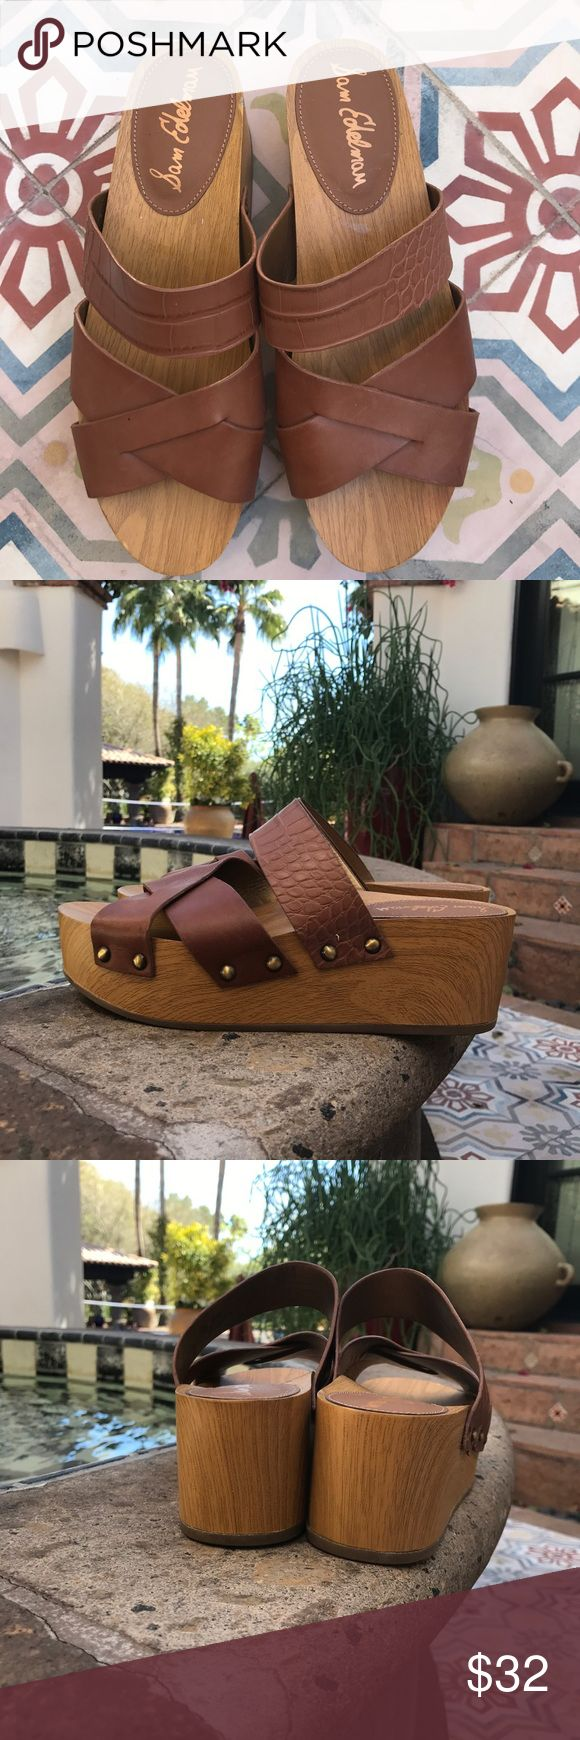 Sam Edelman brown 'Bane' sandal wedge SIZE 7.5 Worn once!  Perfect condition... Wedge is approximately 2.5 inches. The platform is a faux wood and the leather is smooth and croc embossed... perfect shoe for Spring or Summer!! Sam Edelman Shoes Platforms